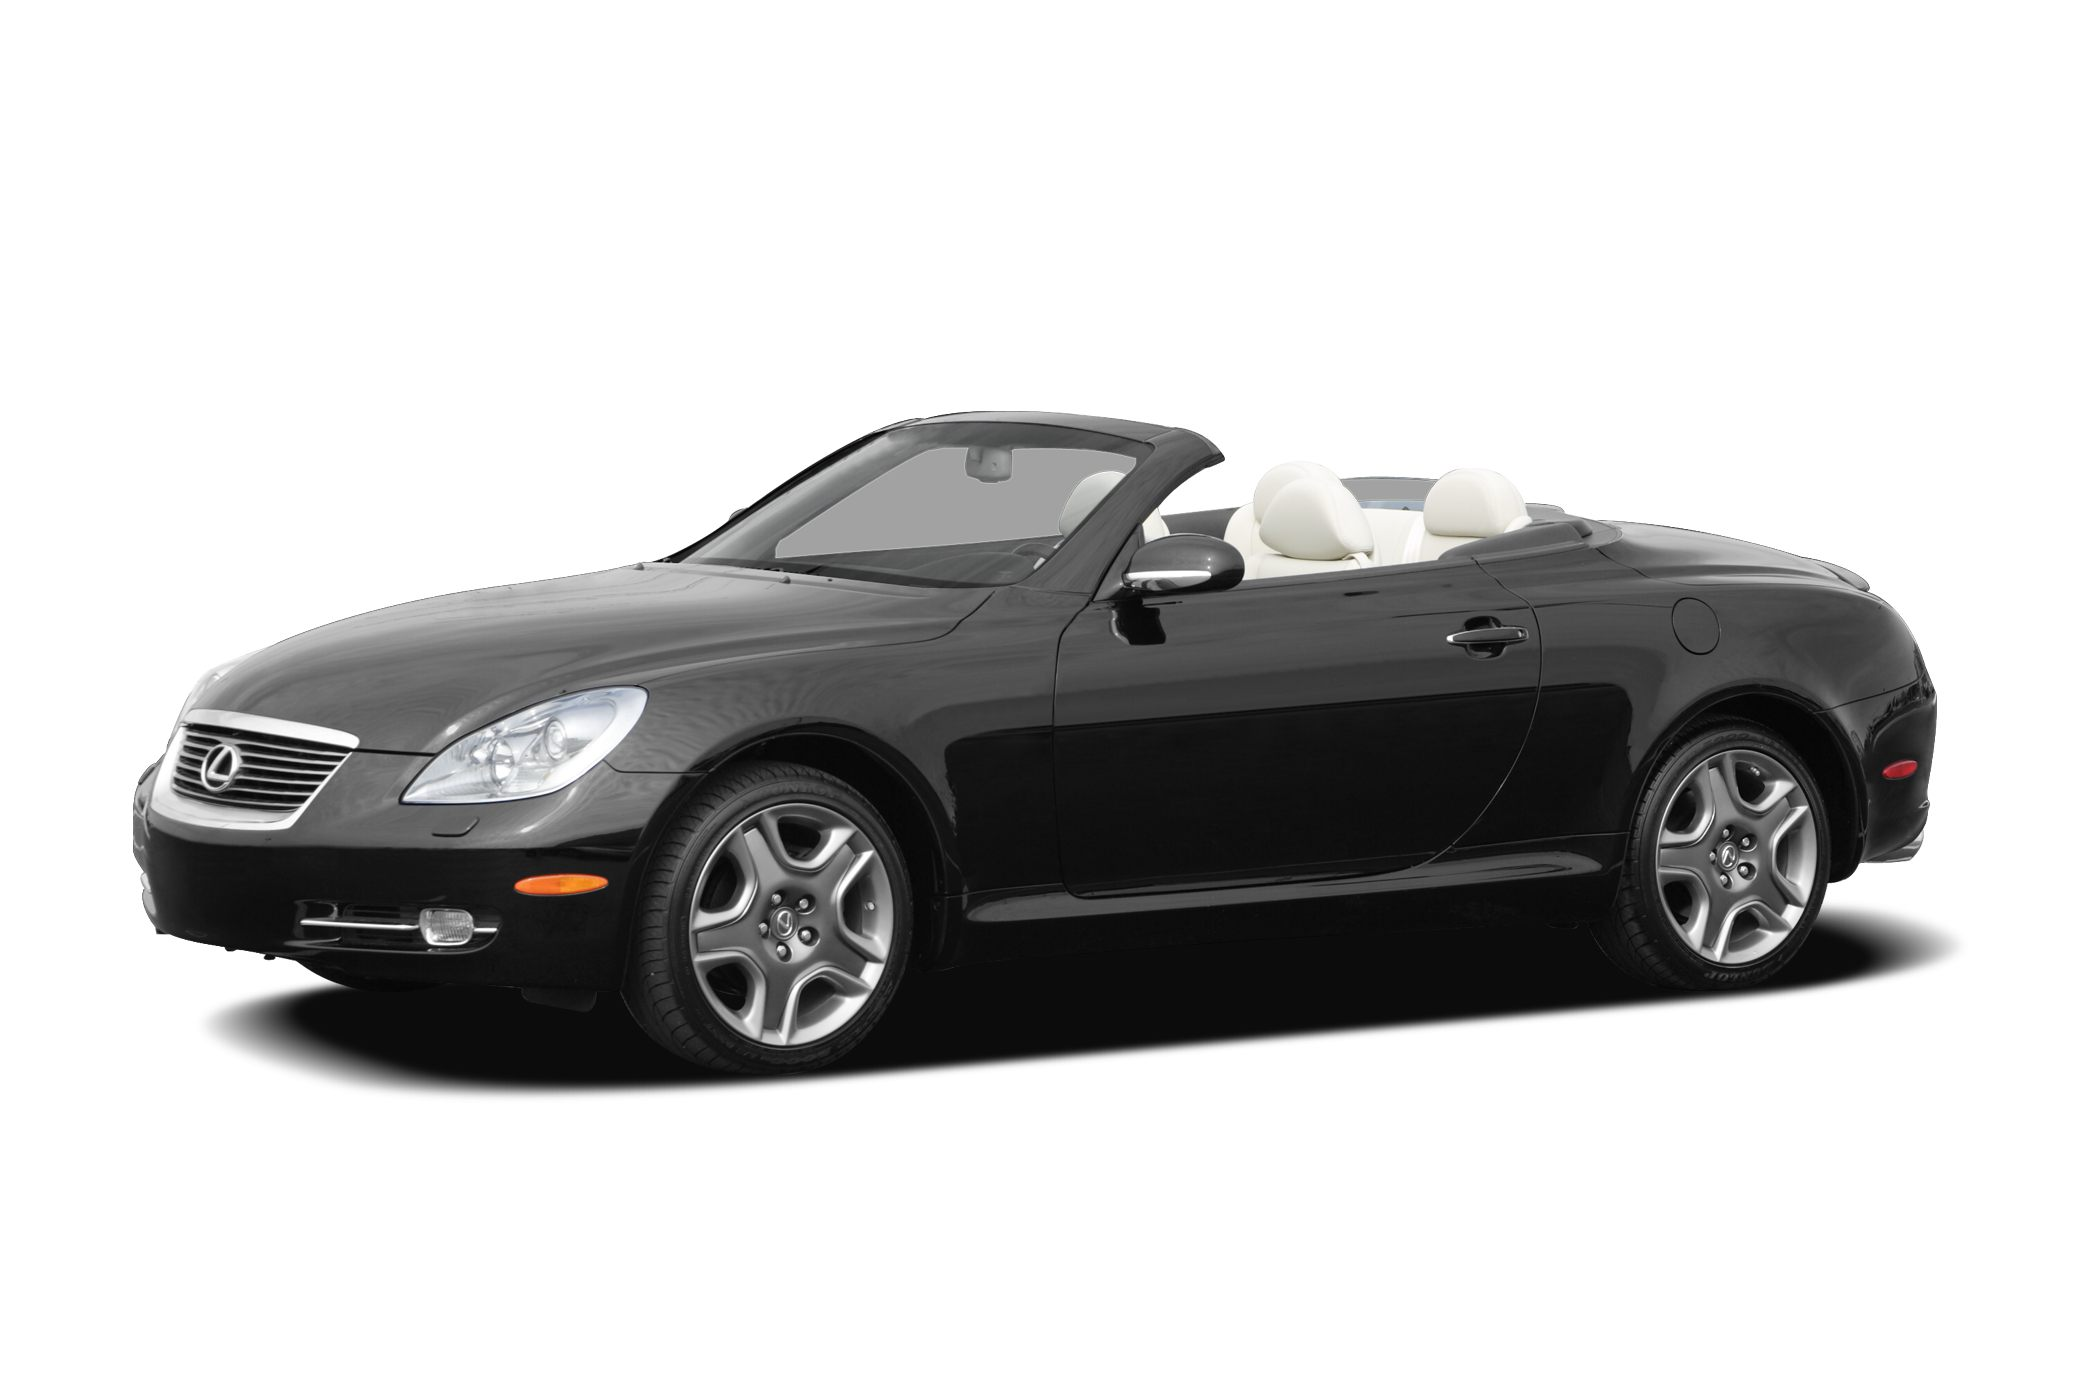 2006 Lexus SC 430 Base 2dr Convertible Information